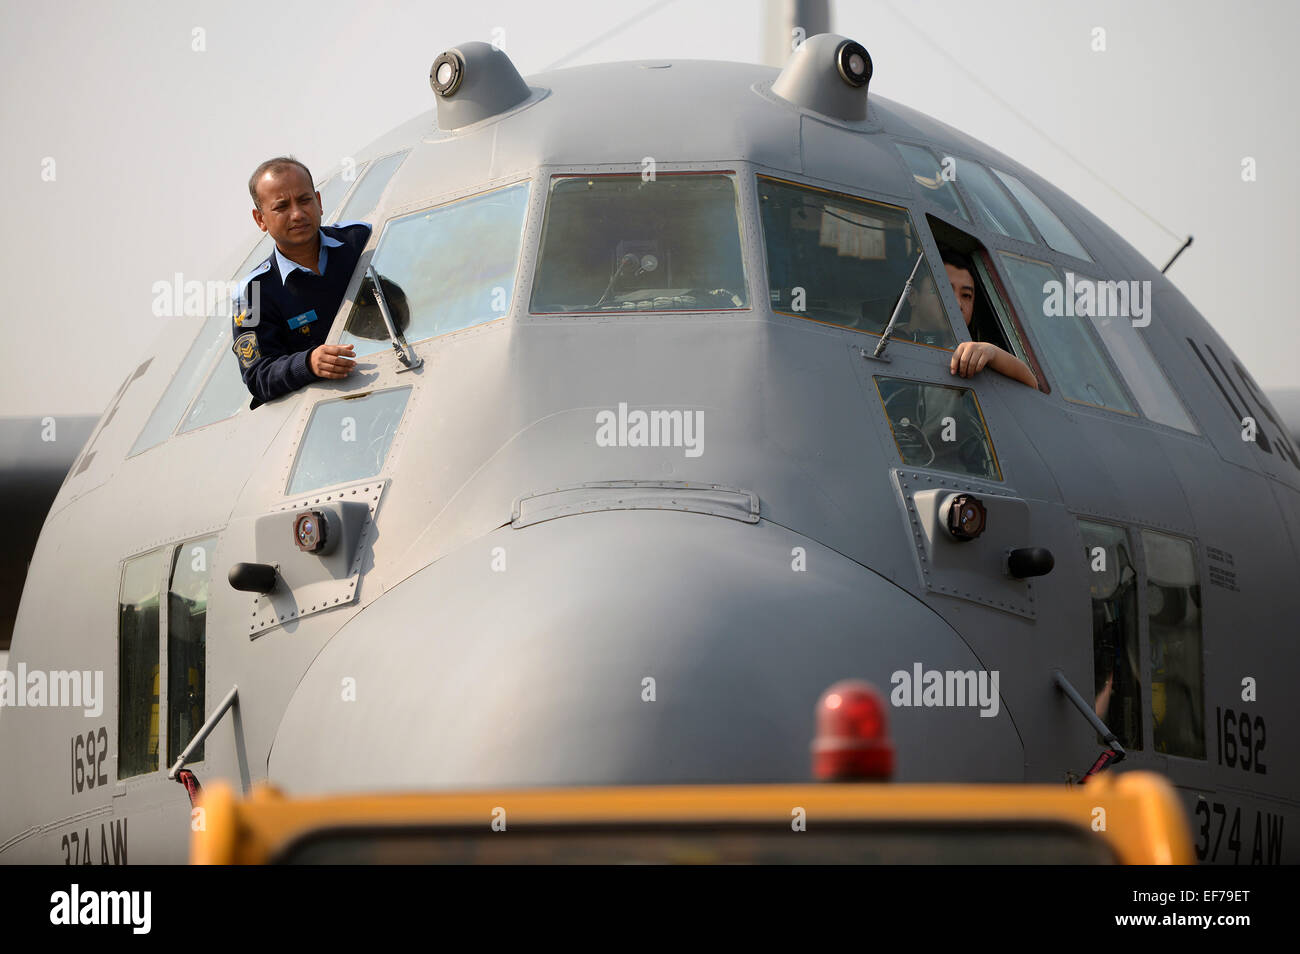 A Bangladesh Air Force airman and U.S. Air Force crew chief keep an eye on their USAF C-130H aircraft as it is towed - Stock Image